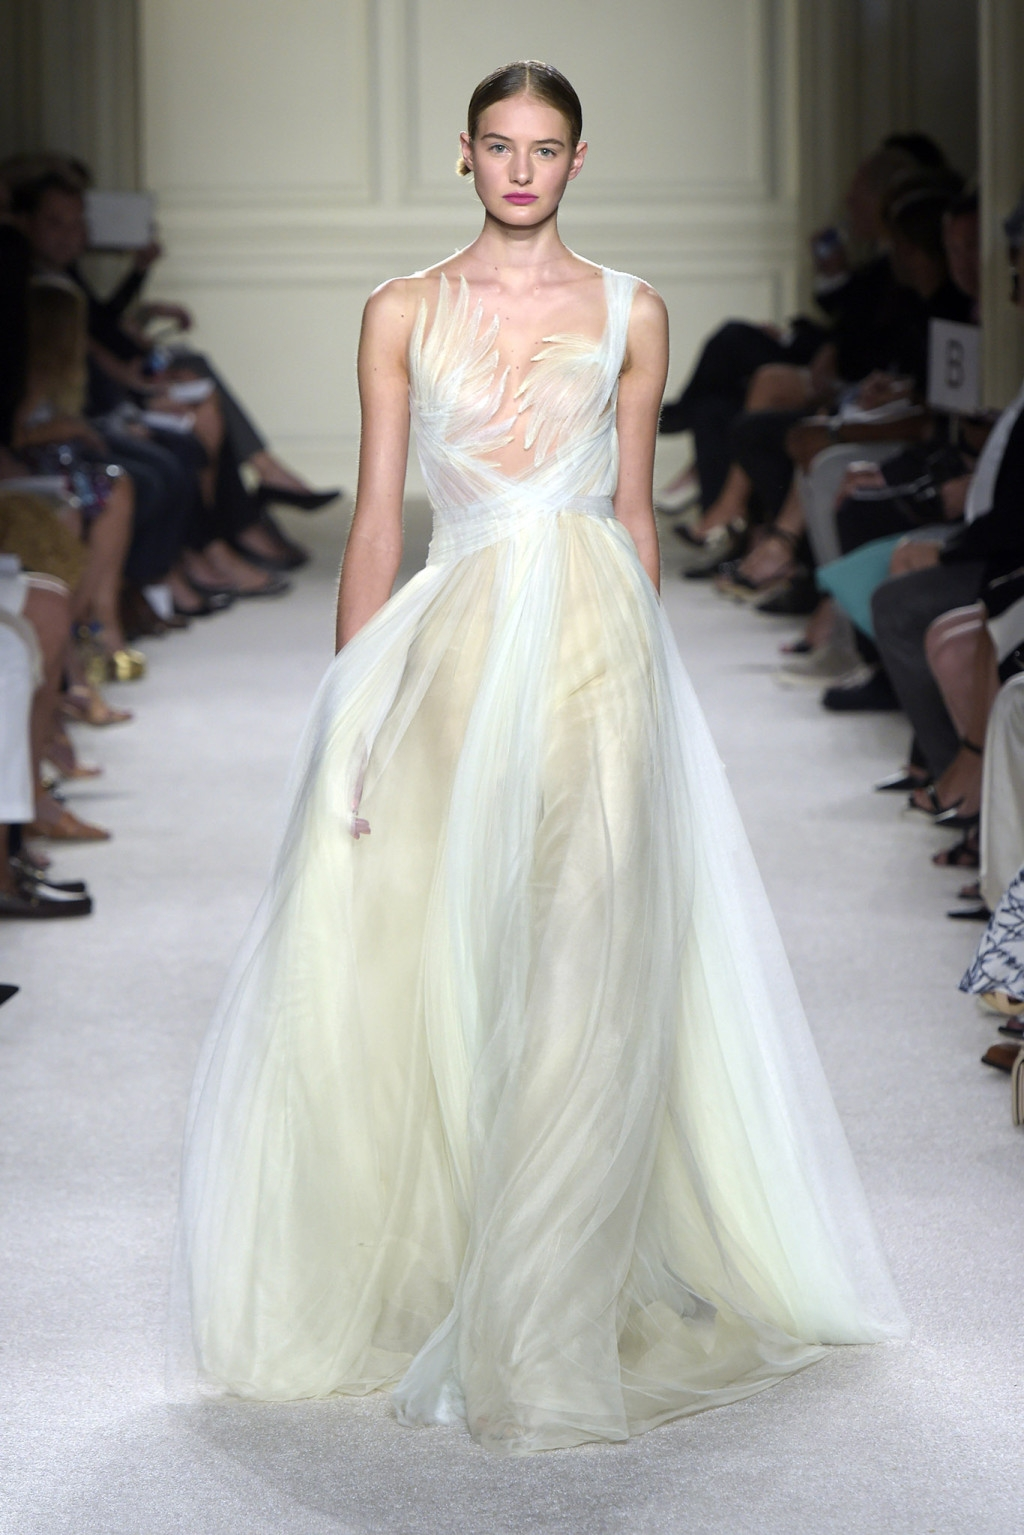 10 Ready-to-Wear Looks That Could Be Bridal Gowns | Japan Fashion